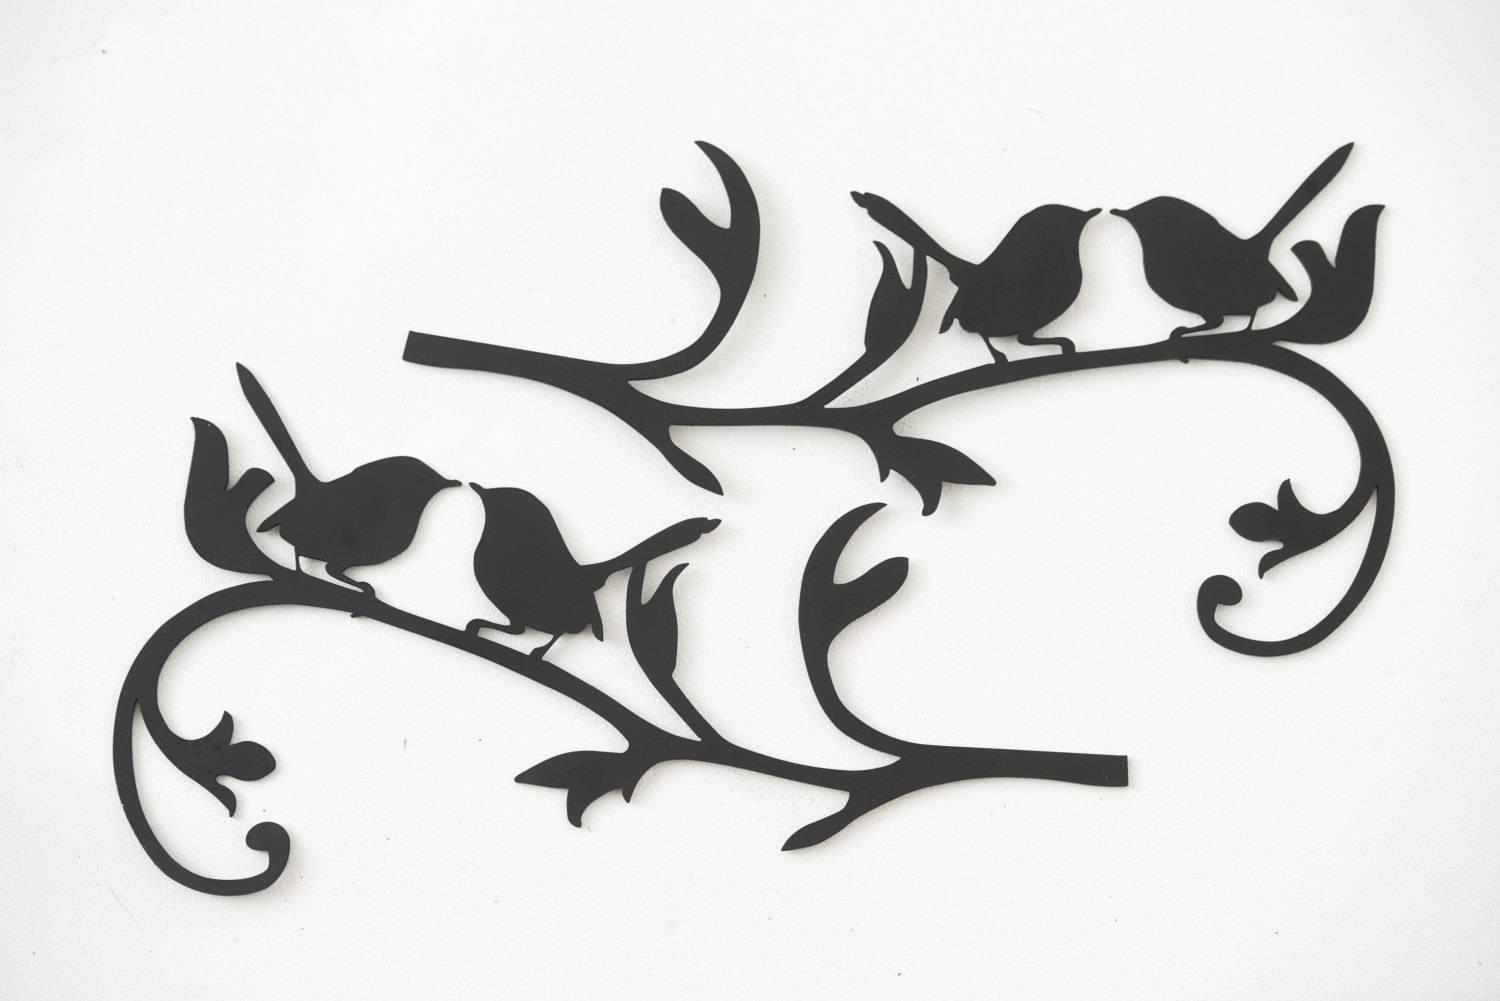 Wall Art Designs: Metal Bird Wall Art Hand Drawn And Laser Cut Intended For Most Popular Metal Wall Art Birds (View 5 of 20)